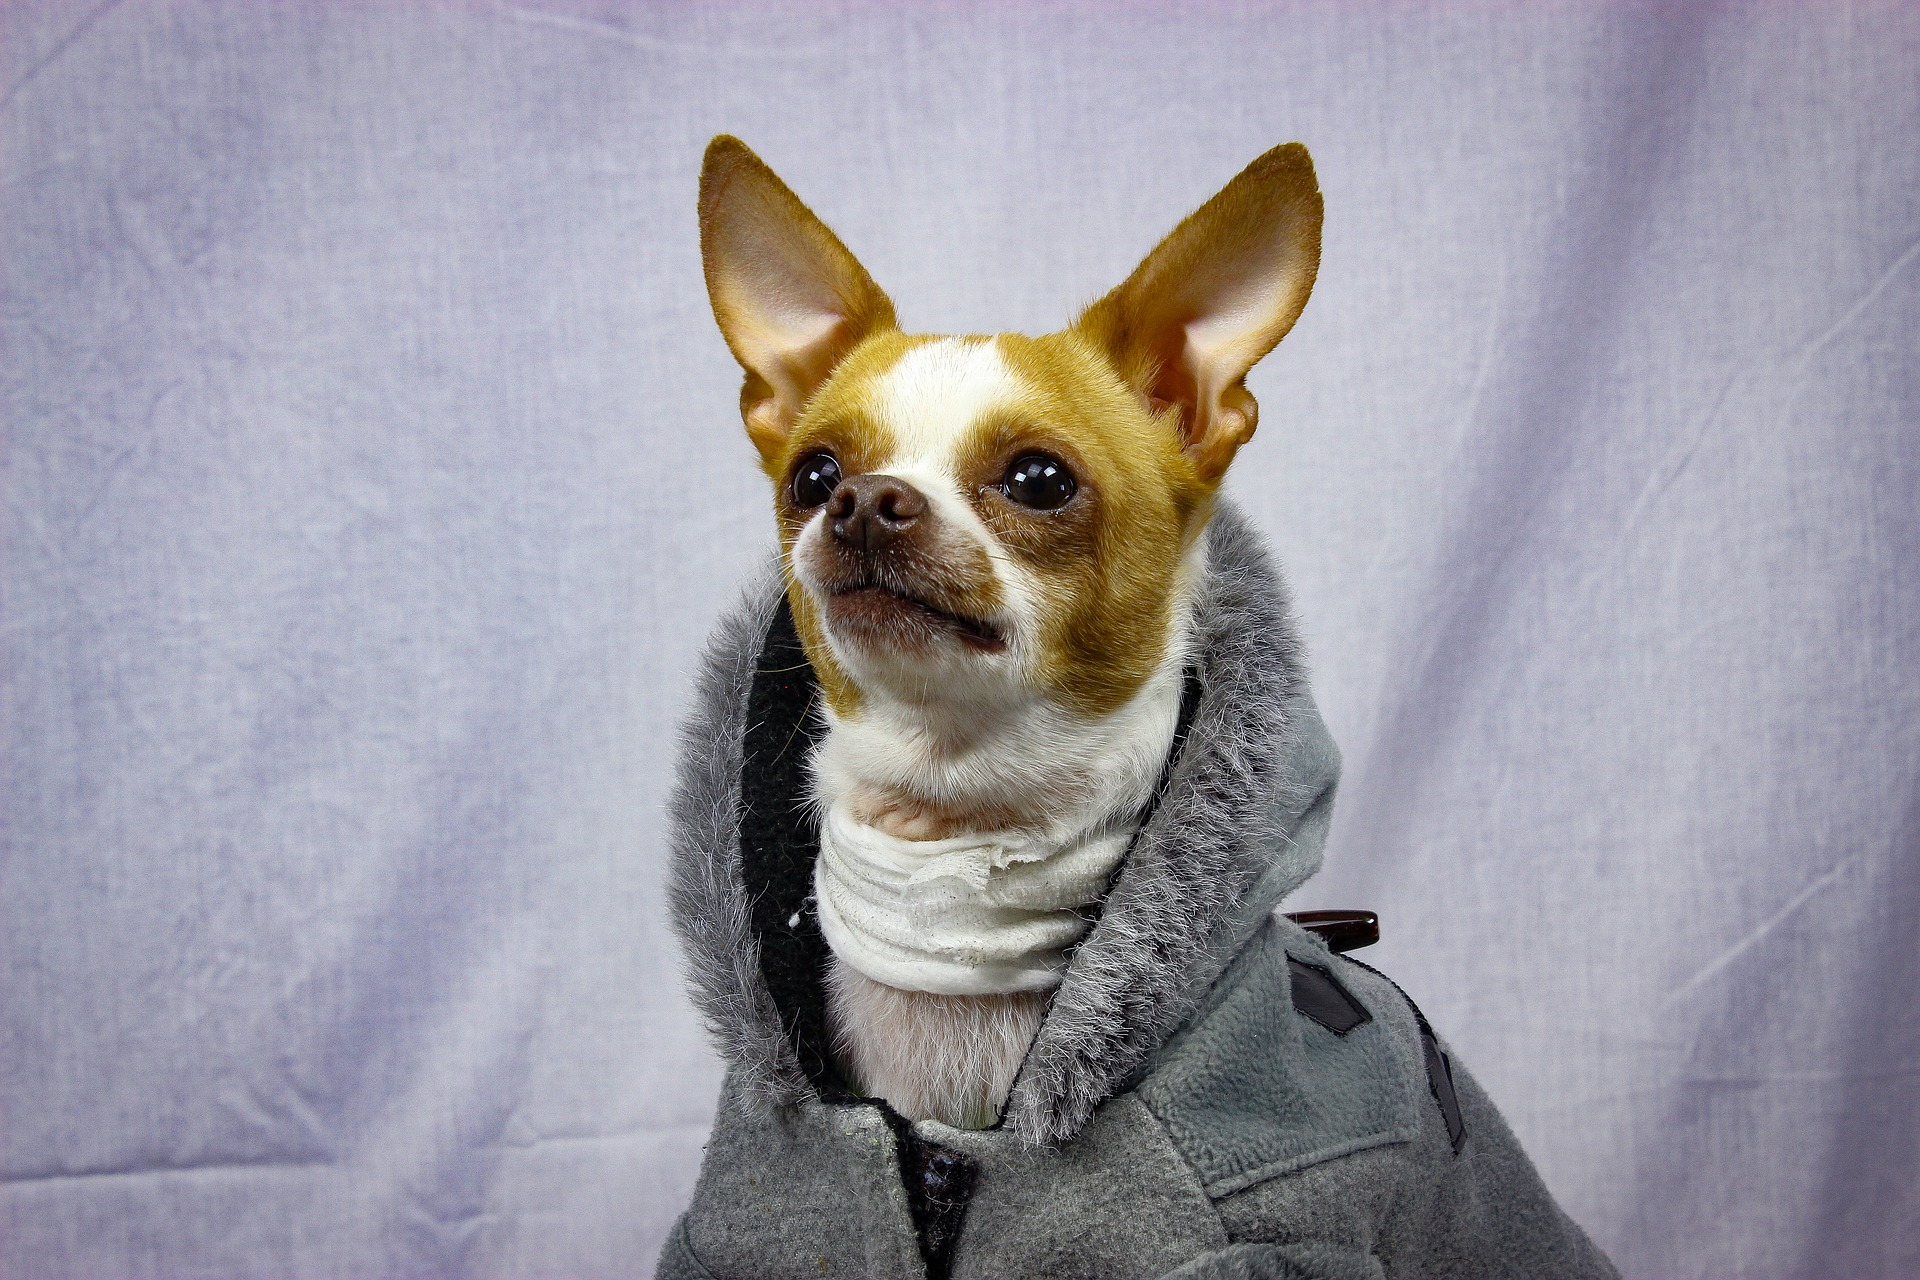 Dogs get cold in the winter